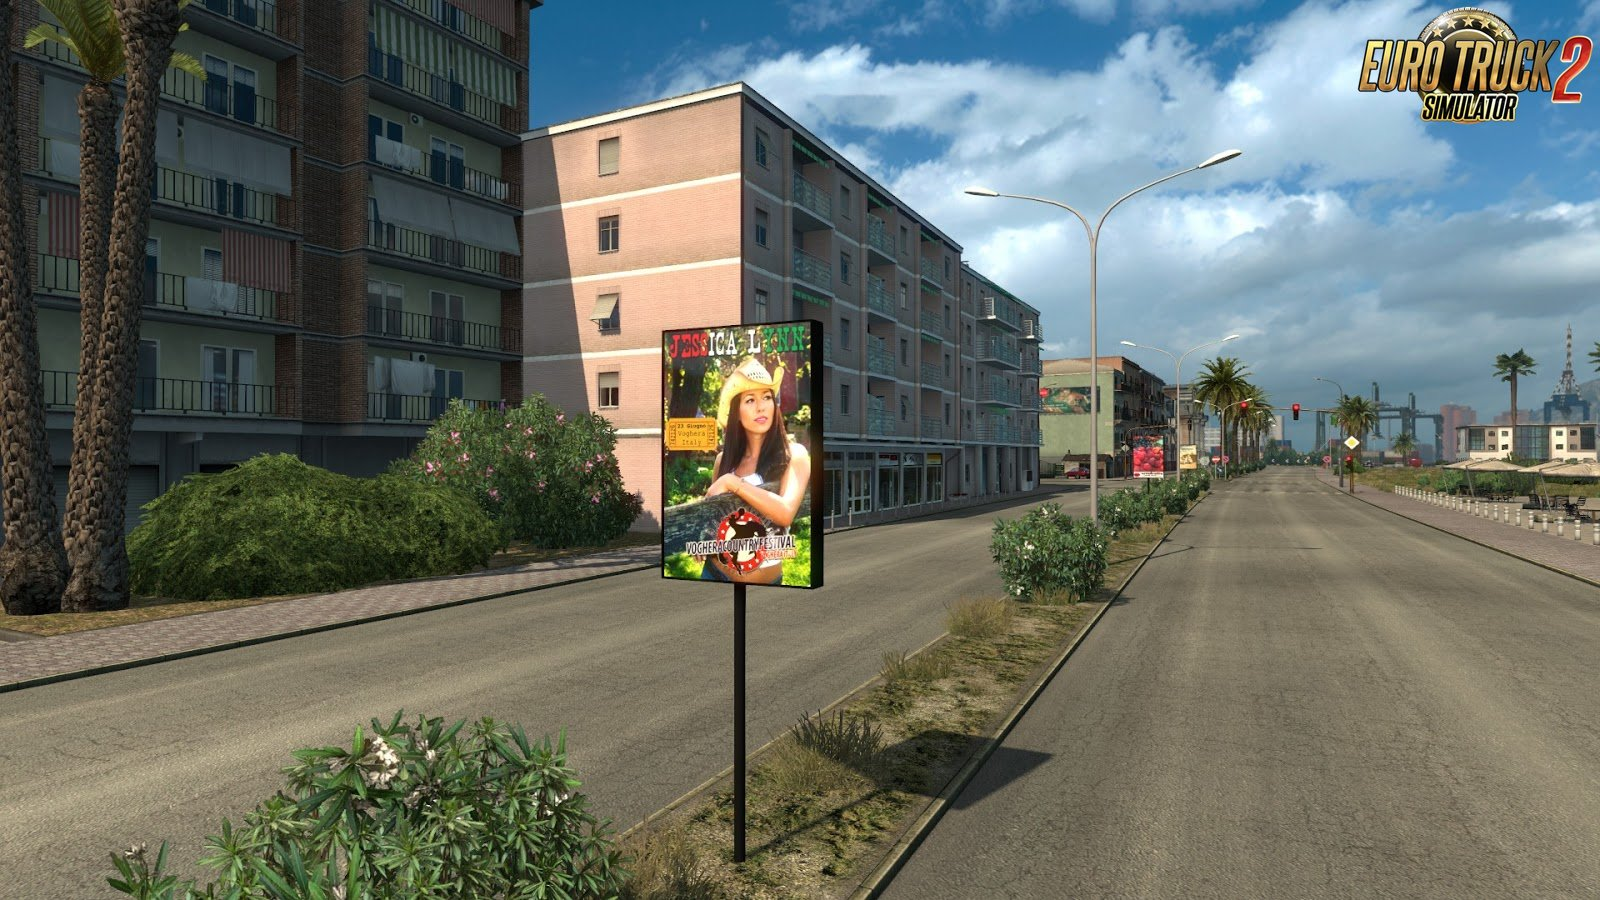 Real Advertisements v1.2 for Ets2